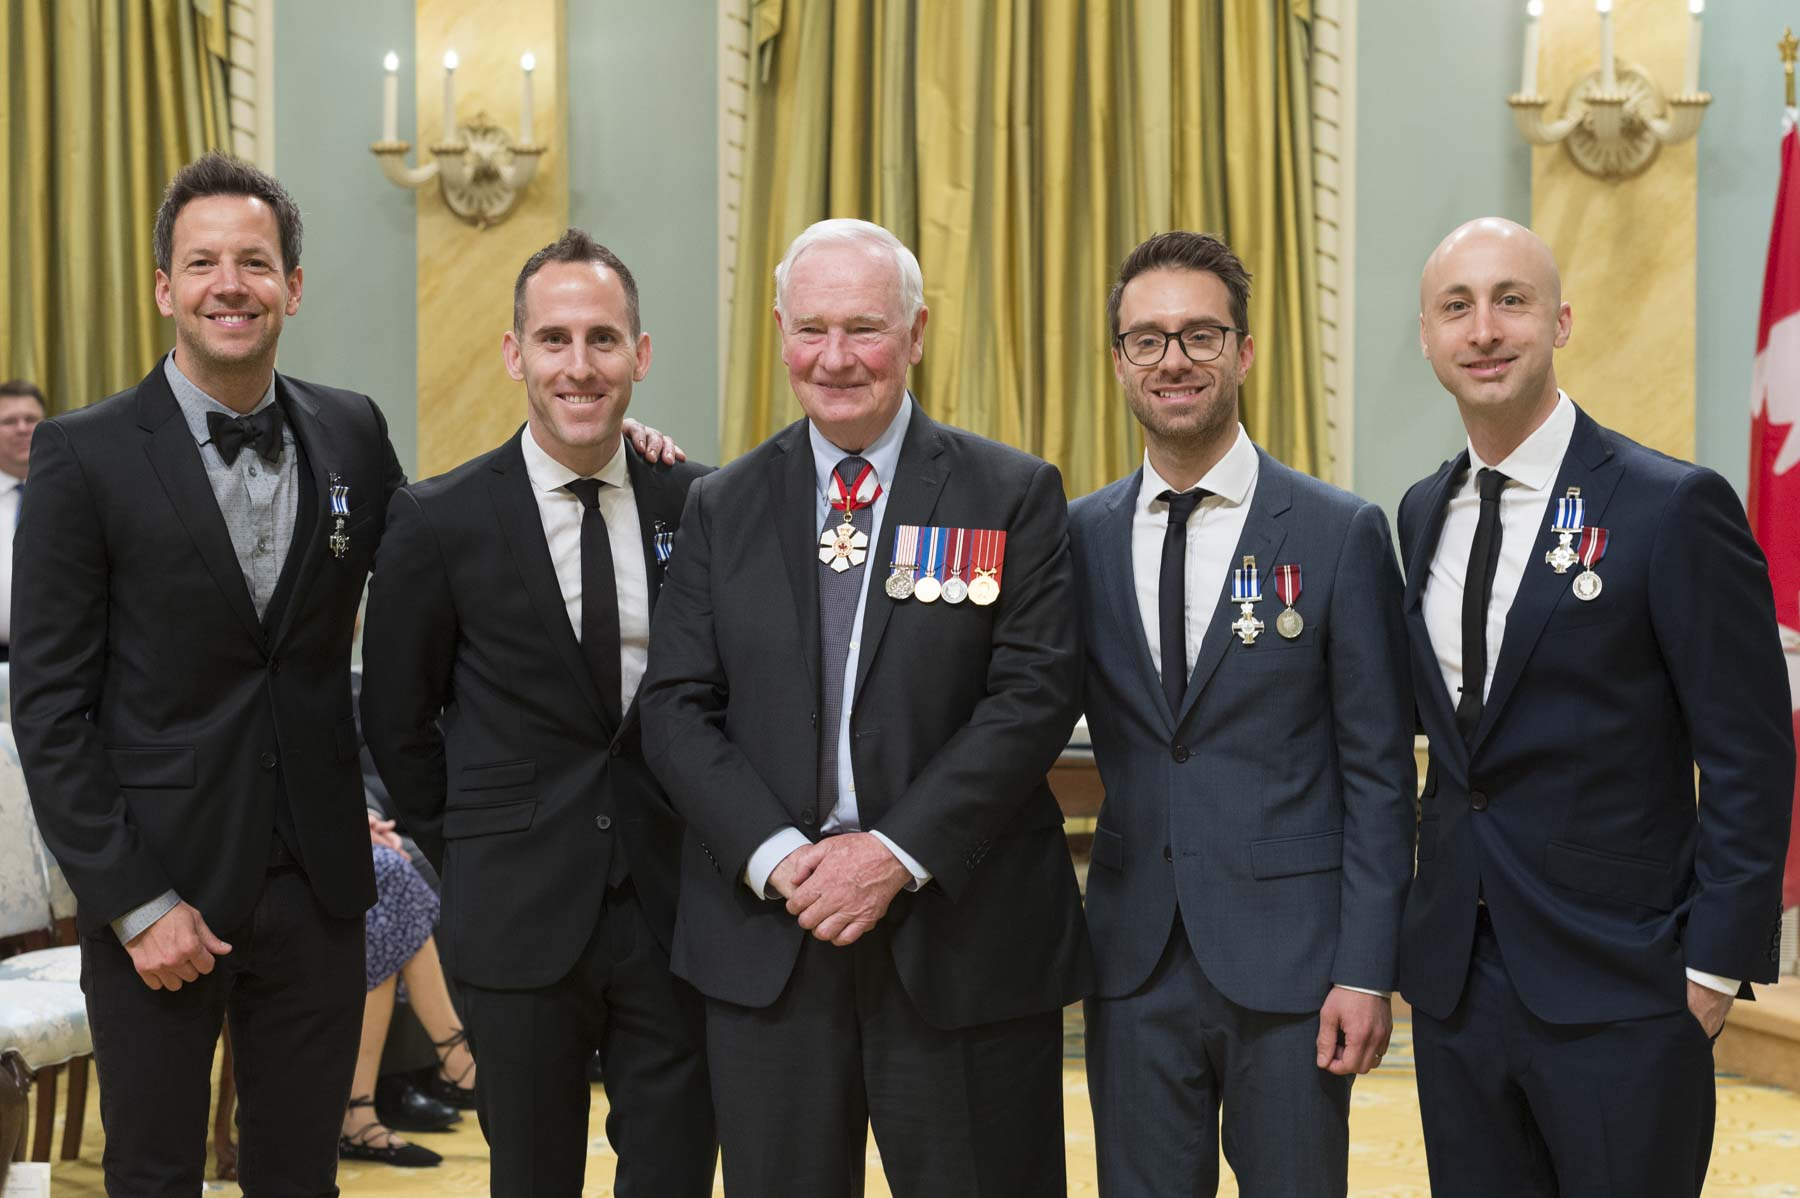 His Excellency presented the Meritorious Service Cross to Pierre Bouvier, Charles-André Comeau, Sébastien Lefebvre and Jean-François Stinco. Through their foundation, the members of Simple Plan, a world-renowned rock band, have made it their mission to help youth in need. Appreciated for both their philanthropy and community involvement, they actively support numerous charitable projects, lending their star power and giving of their time, both in Canada and abroad.